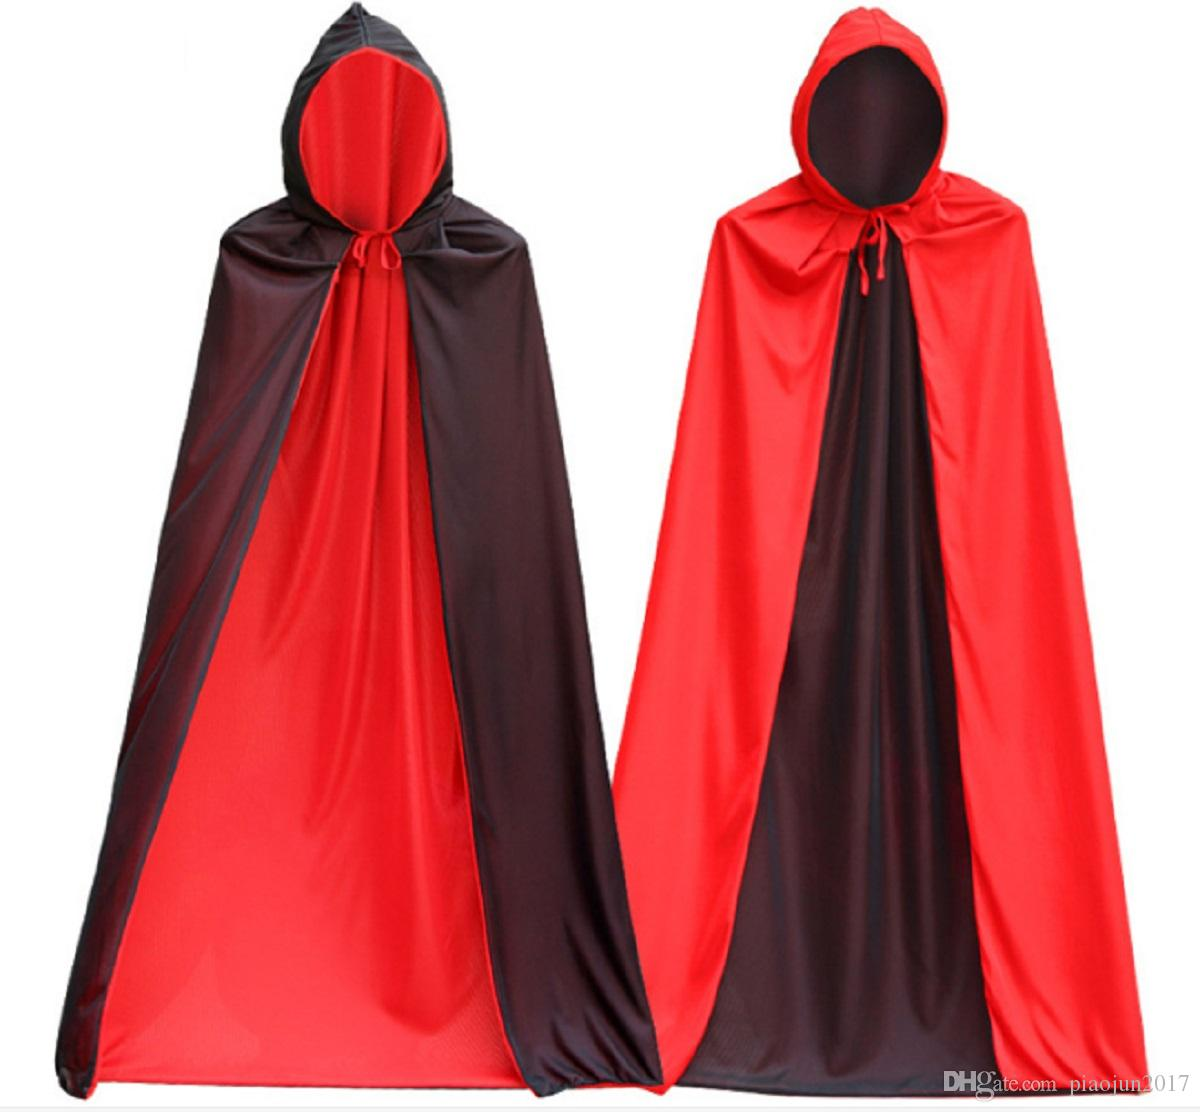 Menu0027s Very Cool V&ire Costume Black Cloak with Cap Halloween Costume Dress Cape for V&ire Magician Double Face Polyester Cloak Can Be Halloween ...  sc 1 st  DHgate.com & Menu0027s Very Cool Vampire Costume Black Cloak with Cap Halloween ...